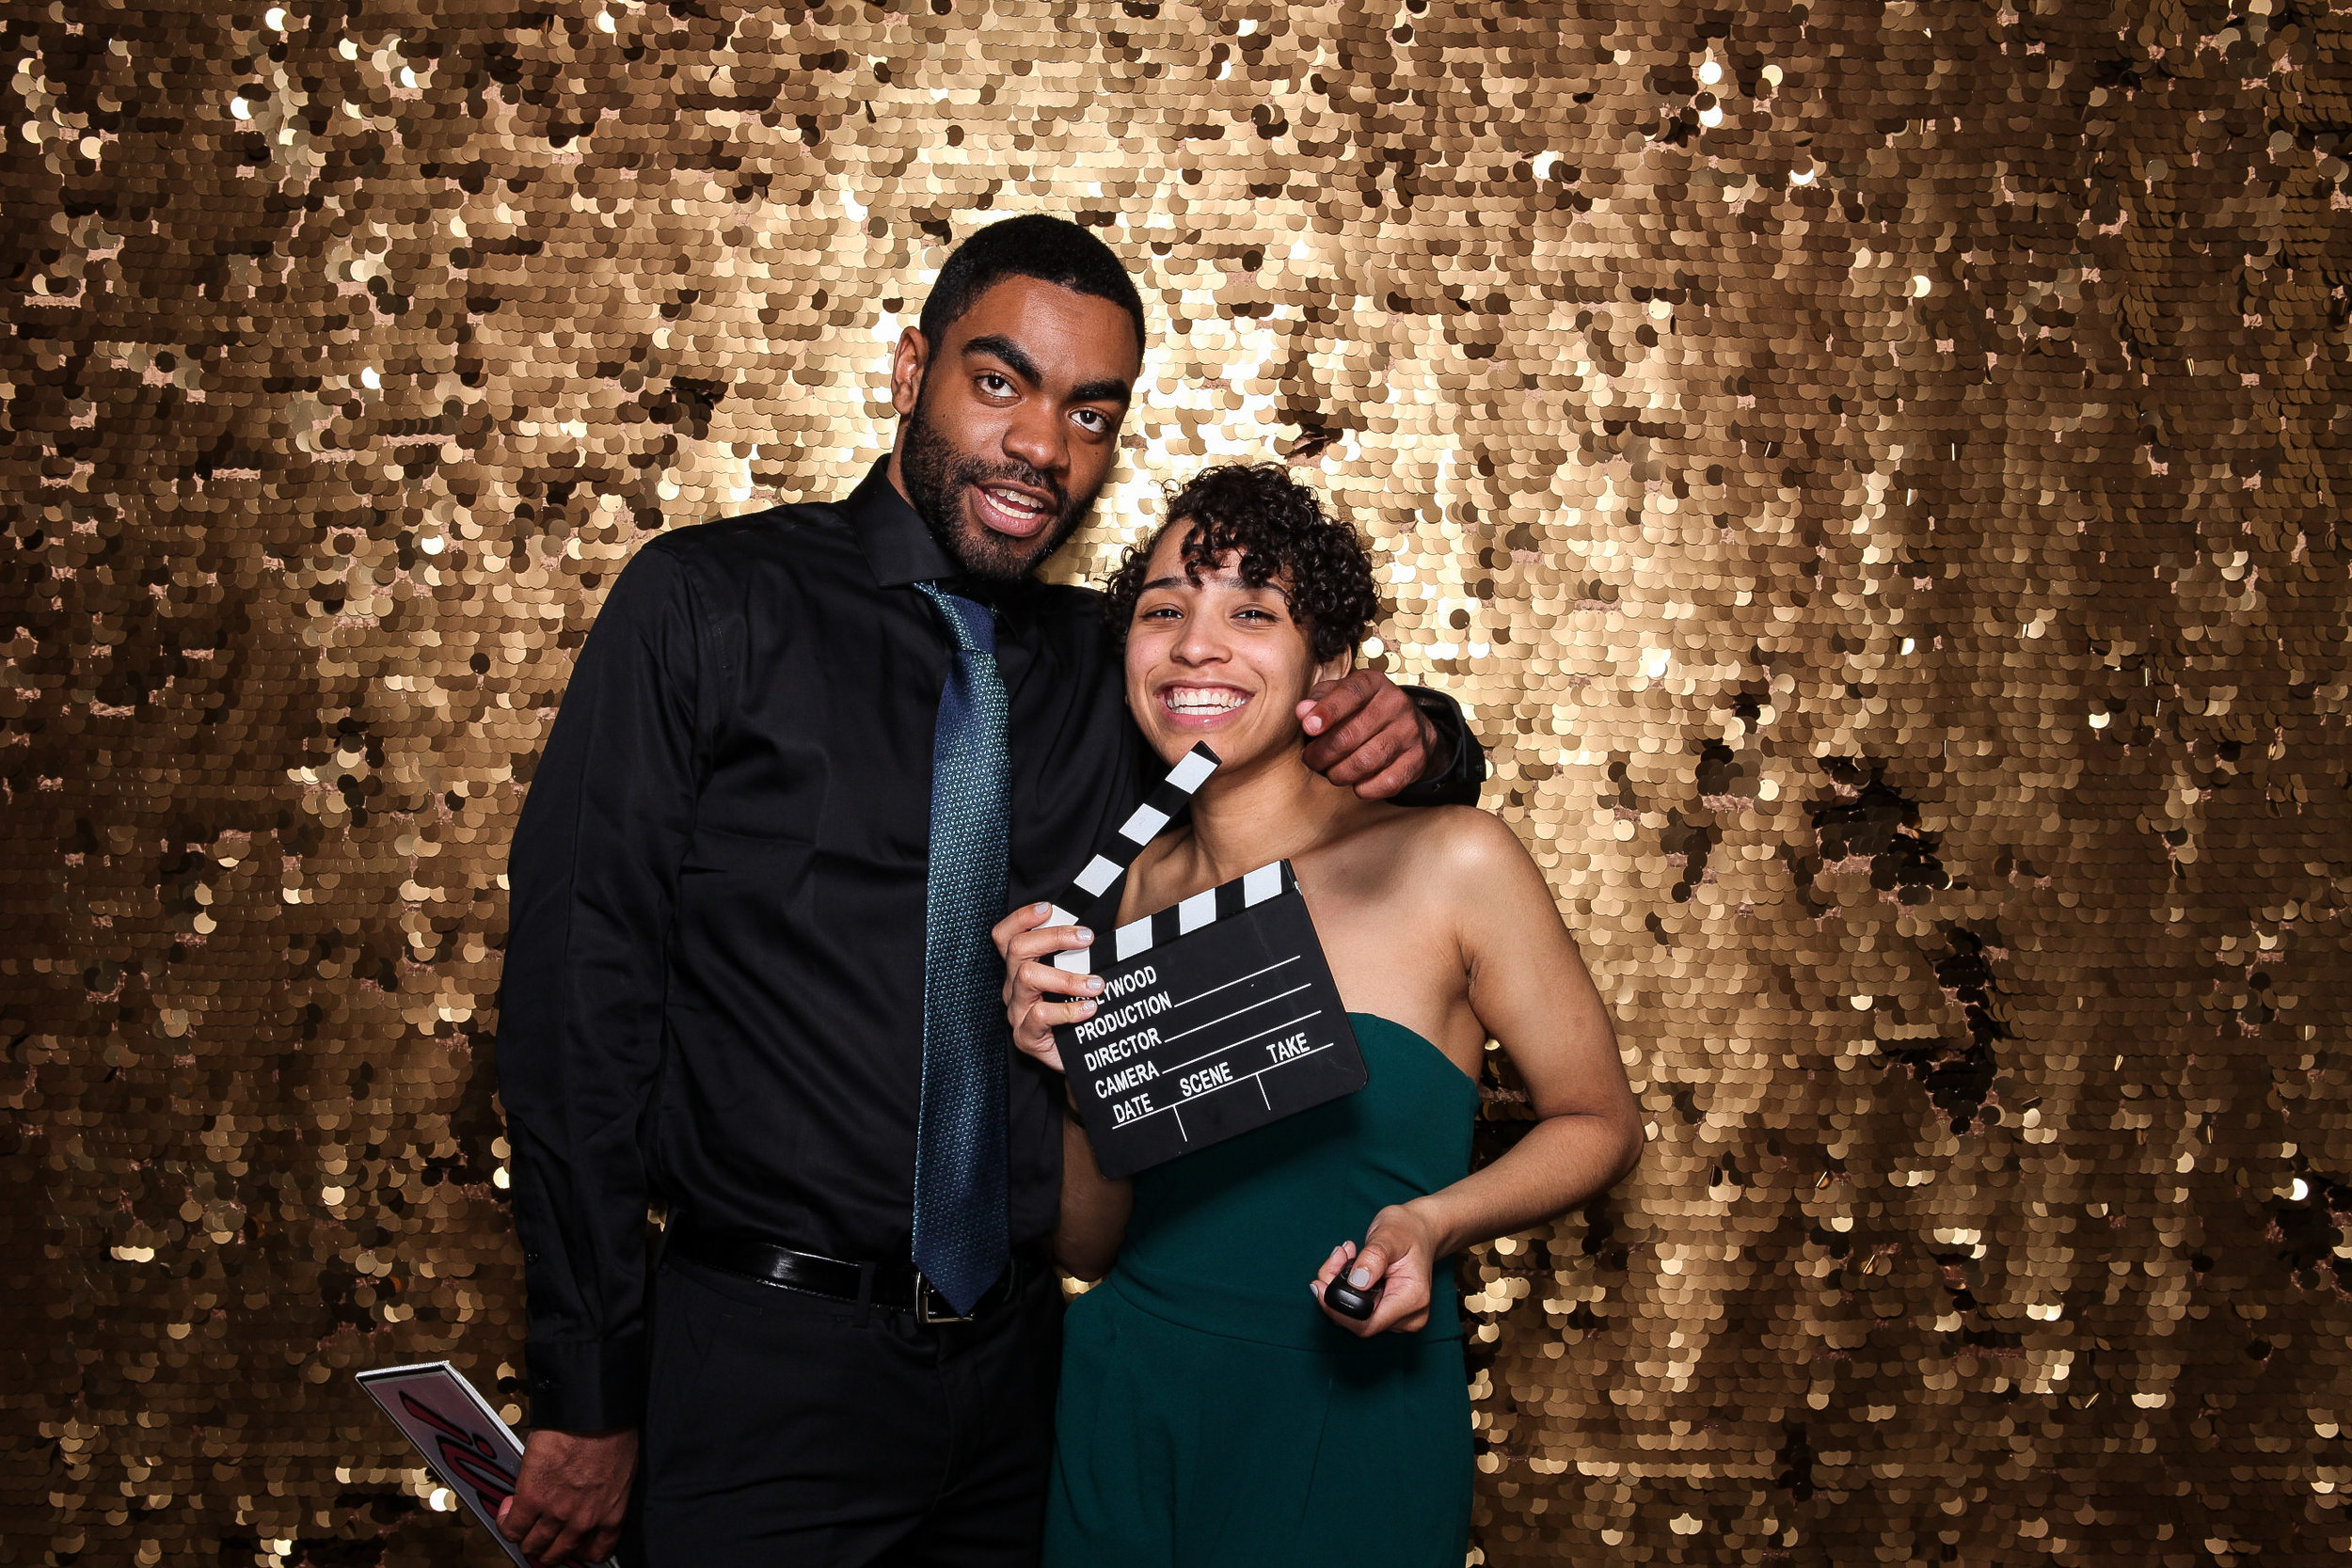 20190503_Adelphi_Senior_Formal-293.jpg